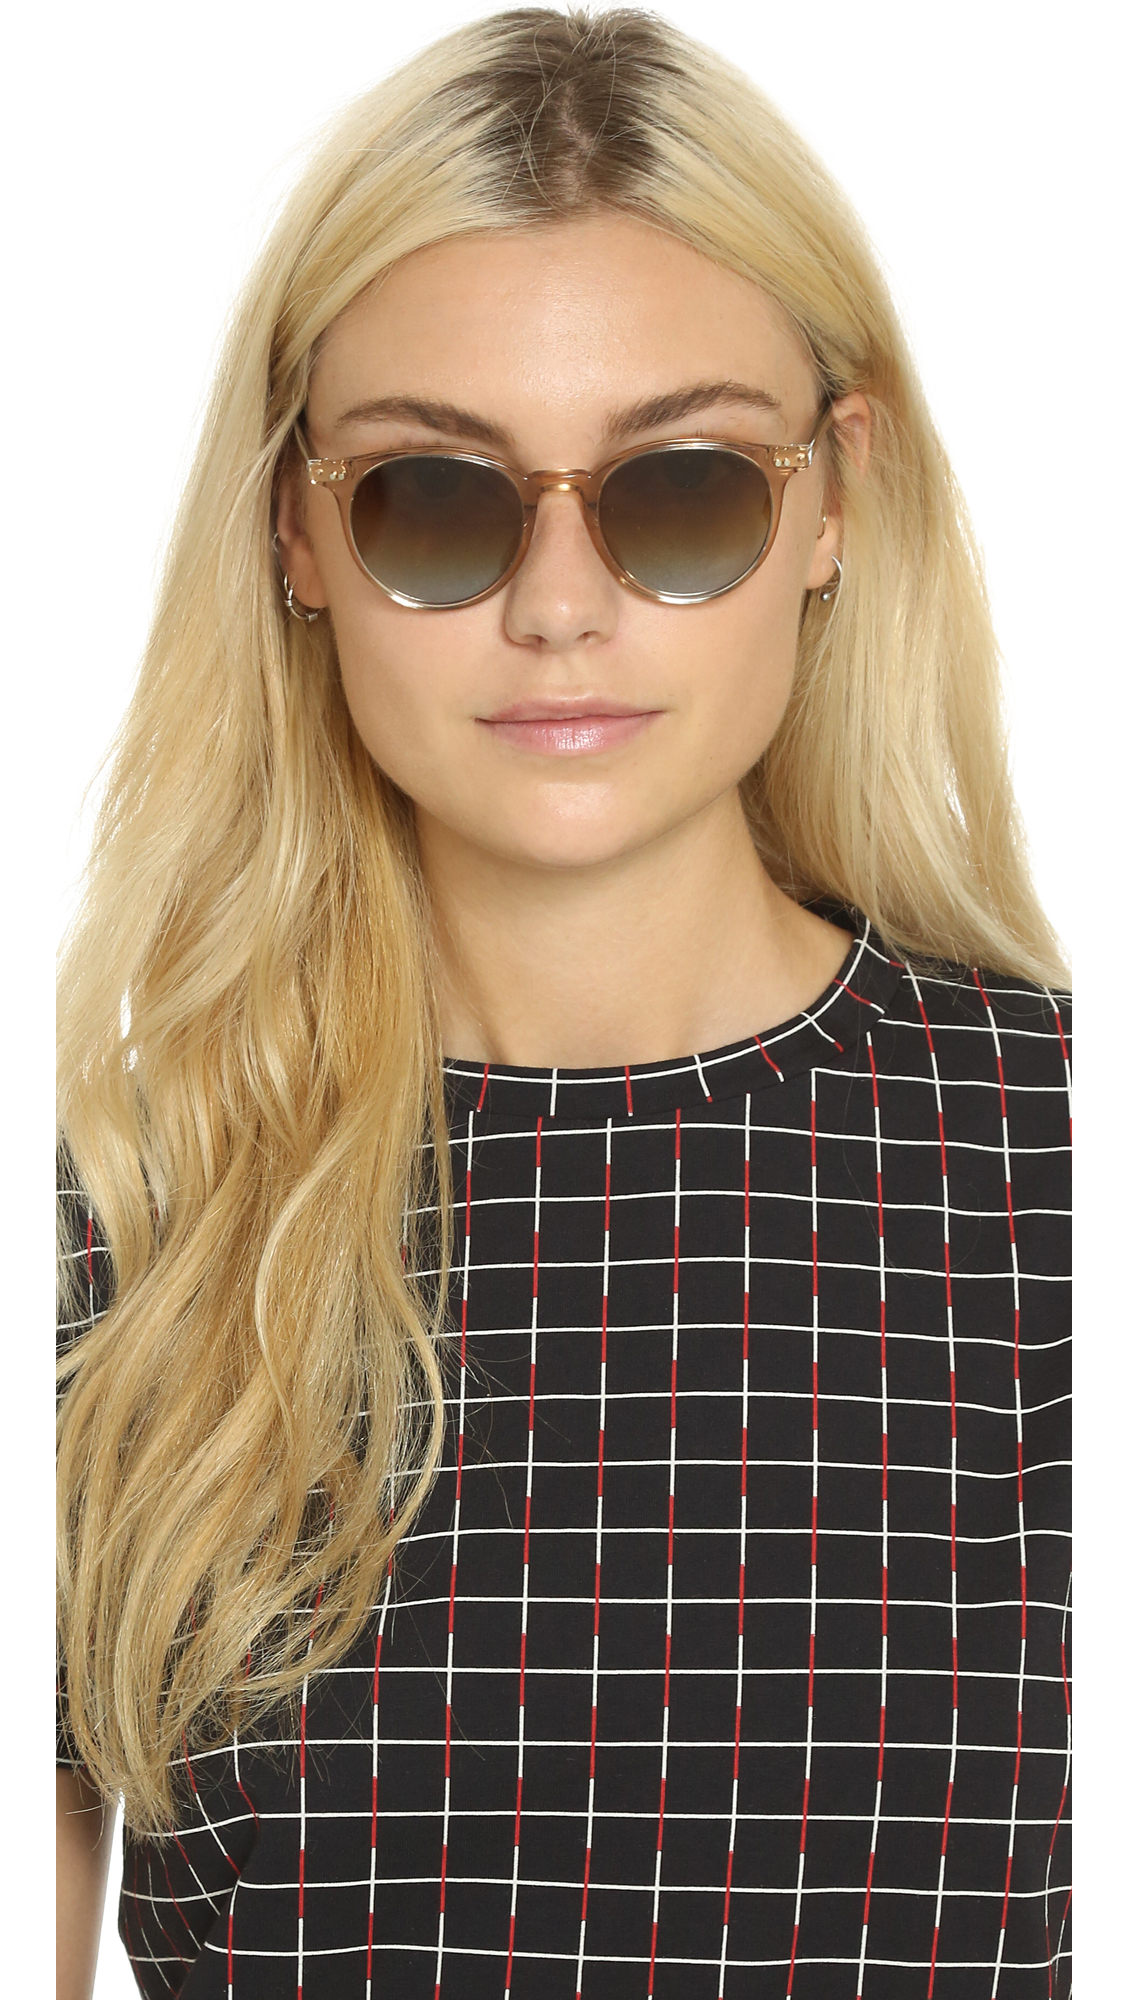 c4e462a47ae Oliver Peoples Eyewear Delray Sunglasses